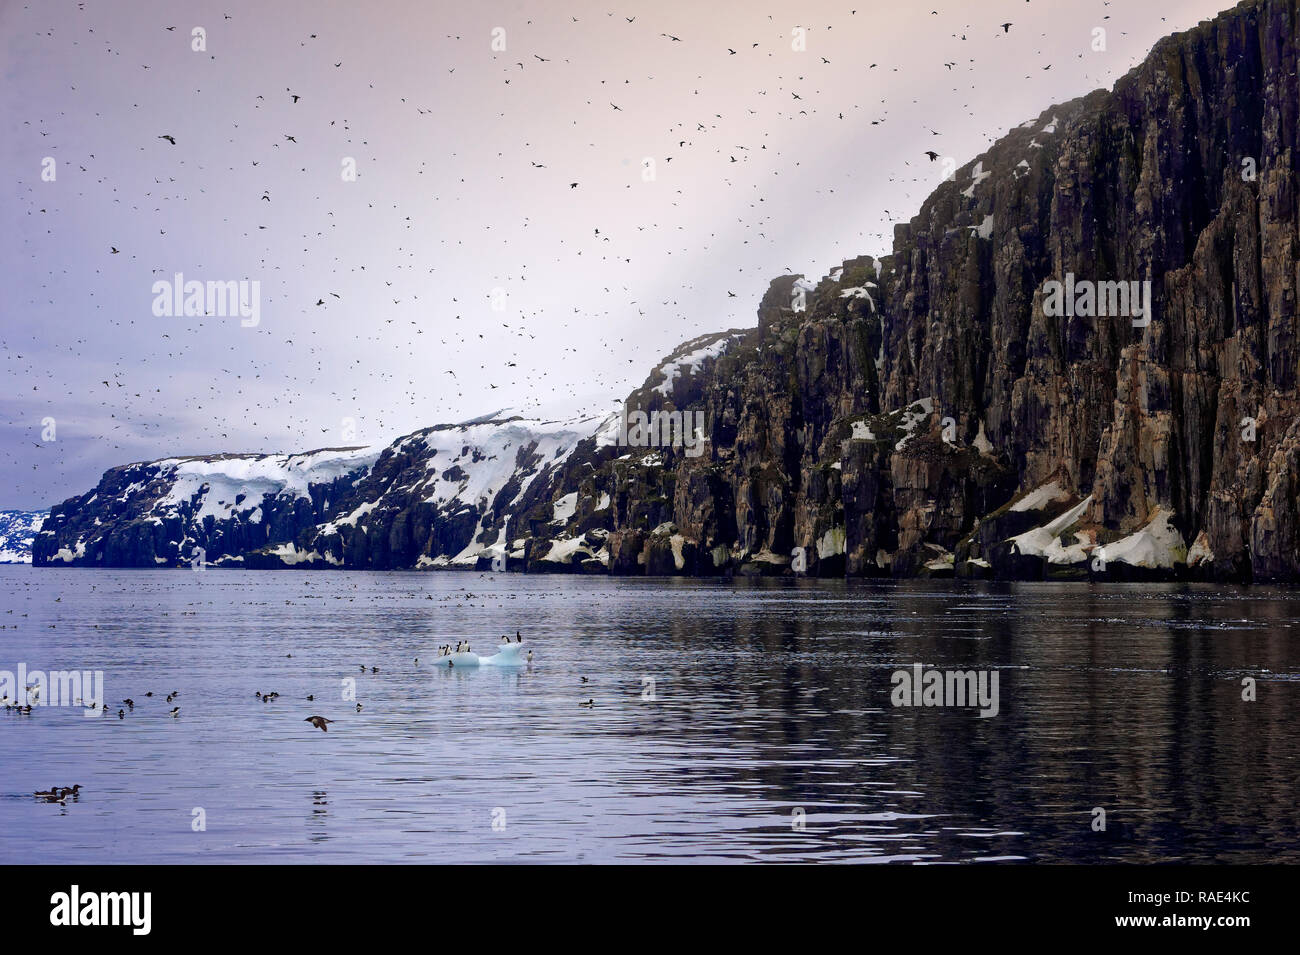 Thick-billed Murres (Uria lomvia) (Brunnich's guillemots) colony, Alkefjellet Hinlopen Strait, Svalbard archipelago, Arctic, Norway, Europe Stock Photo